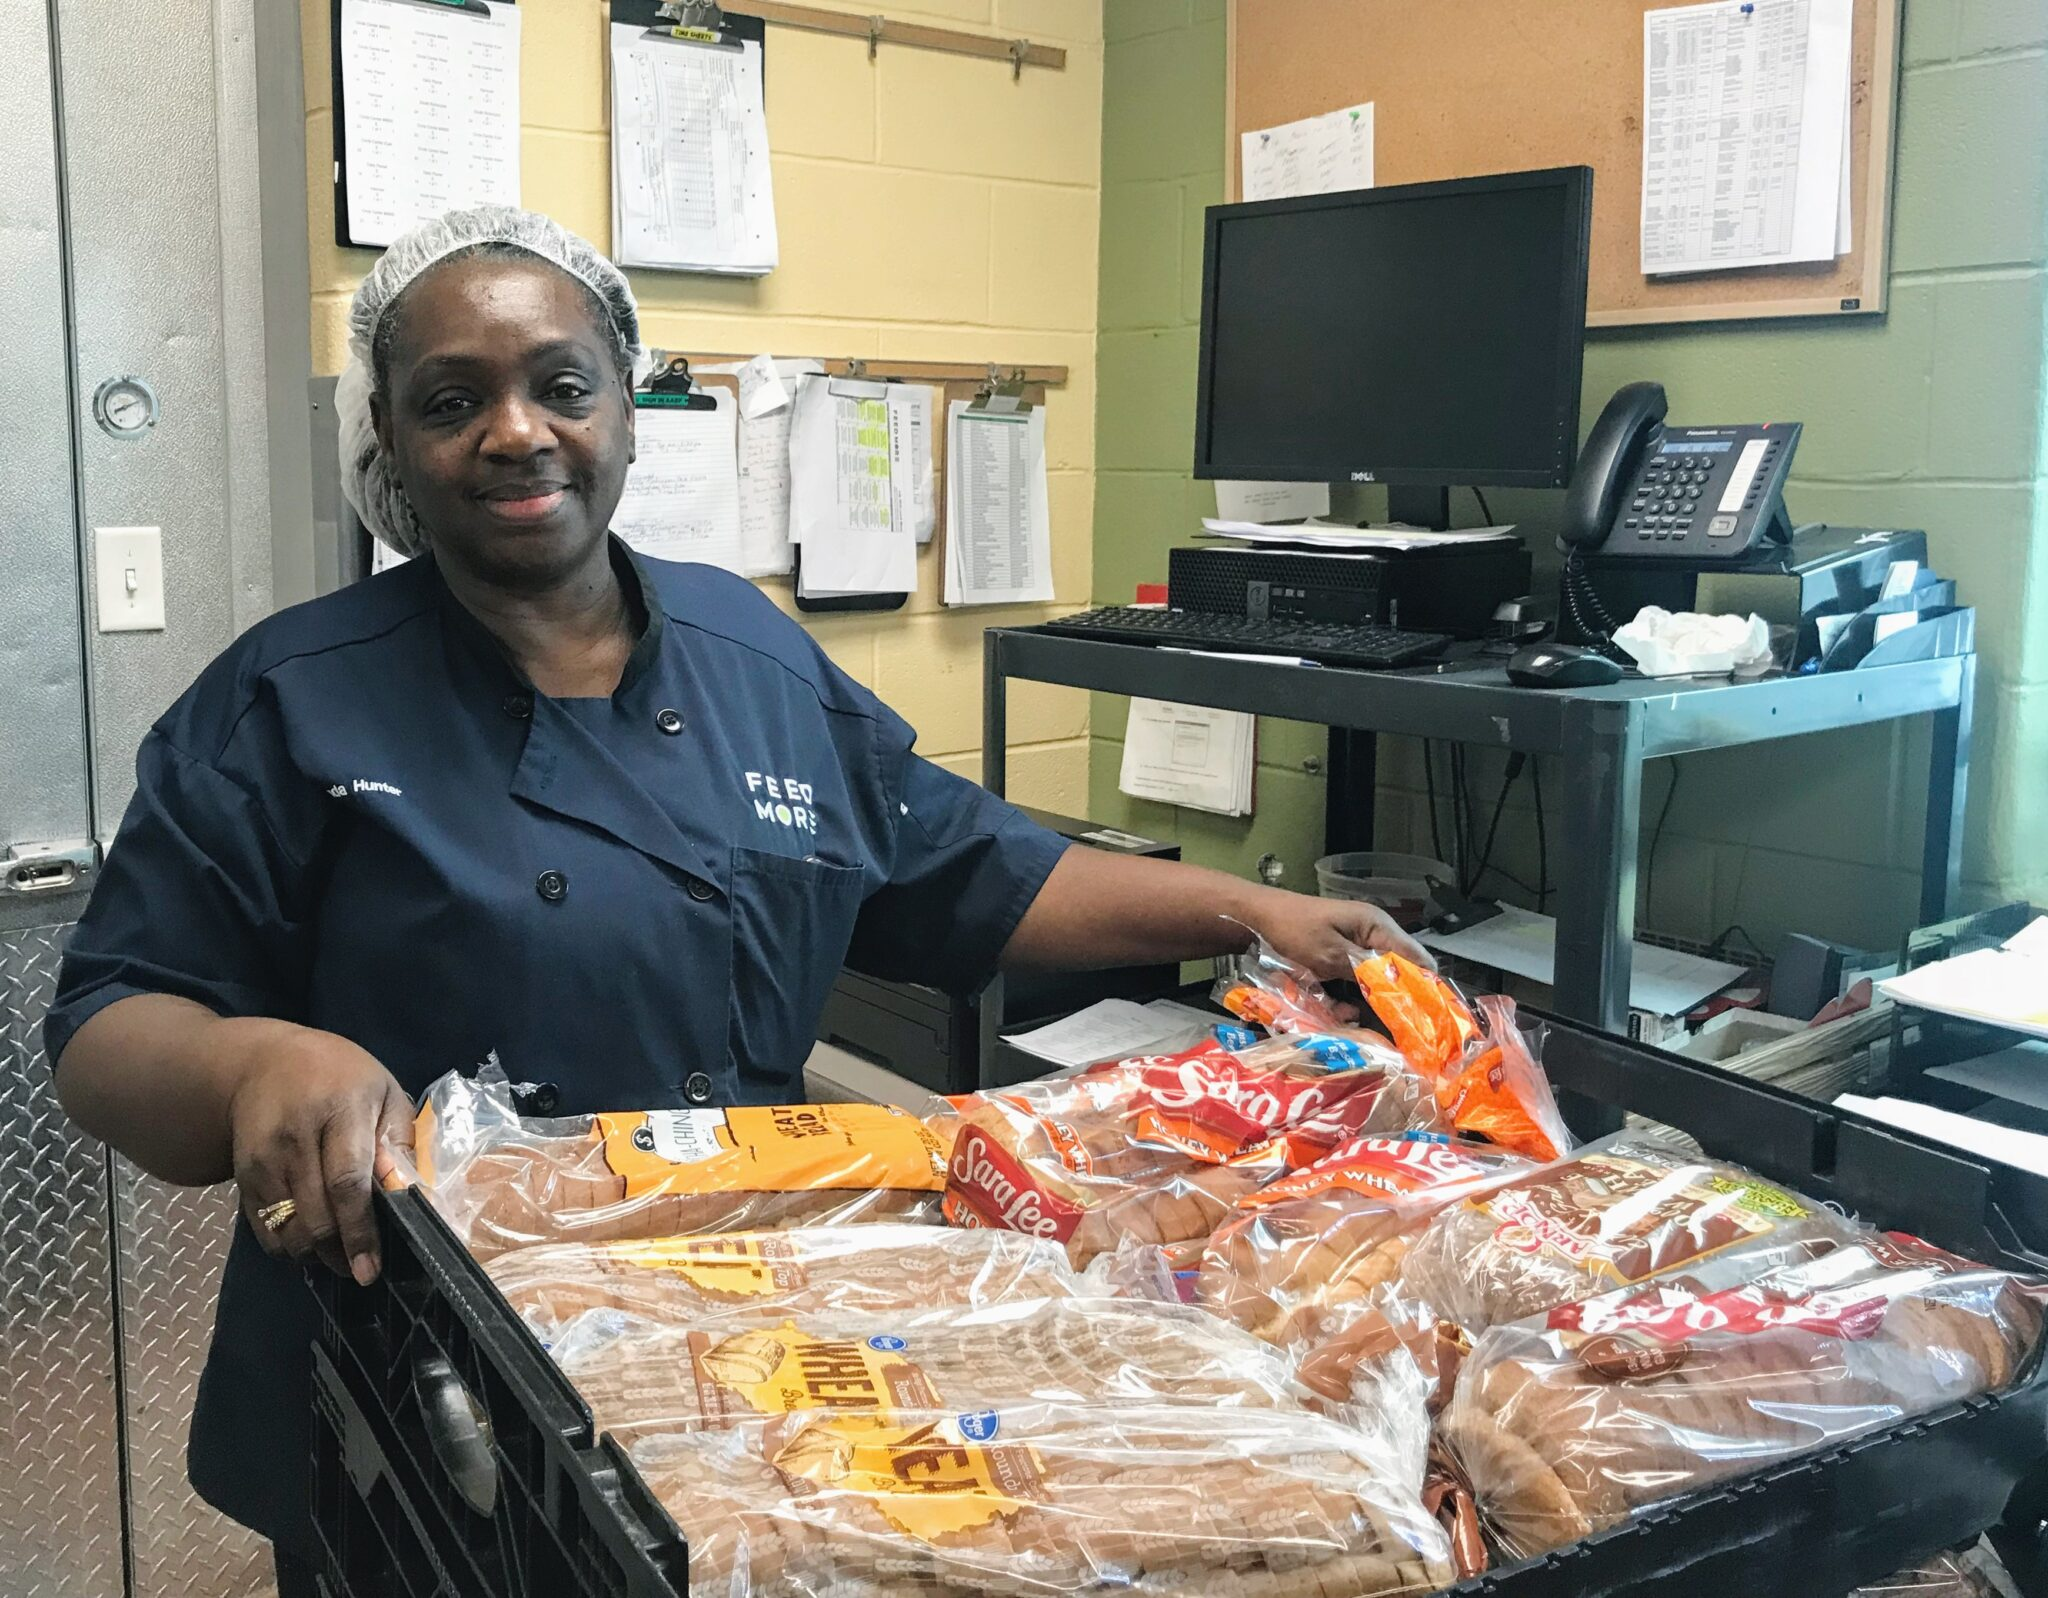 Brenda Hunter Feed More Community Kitchen